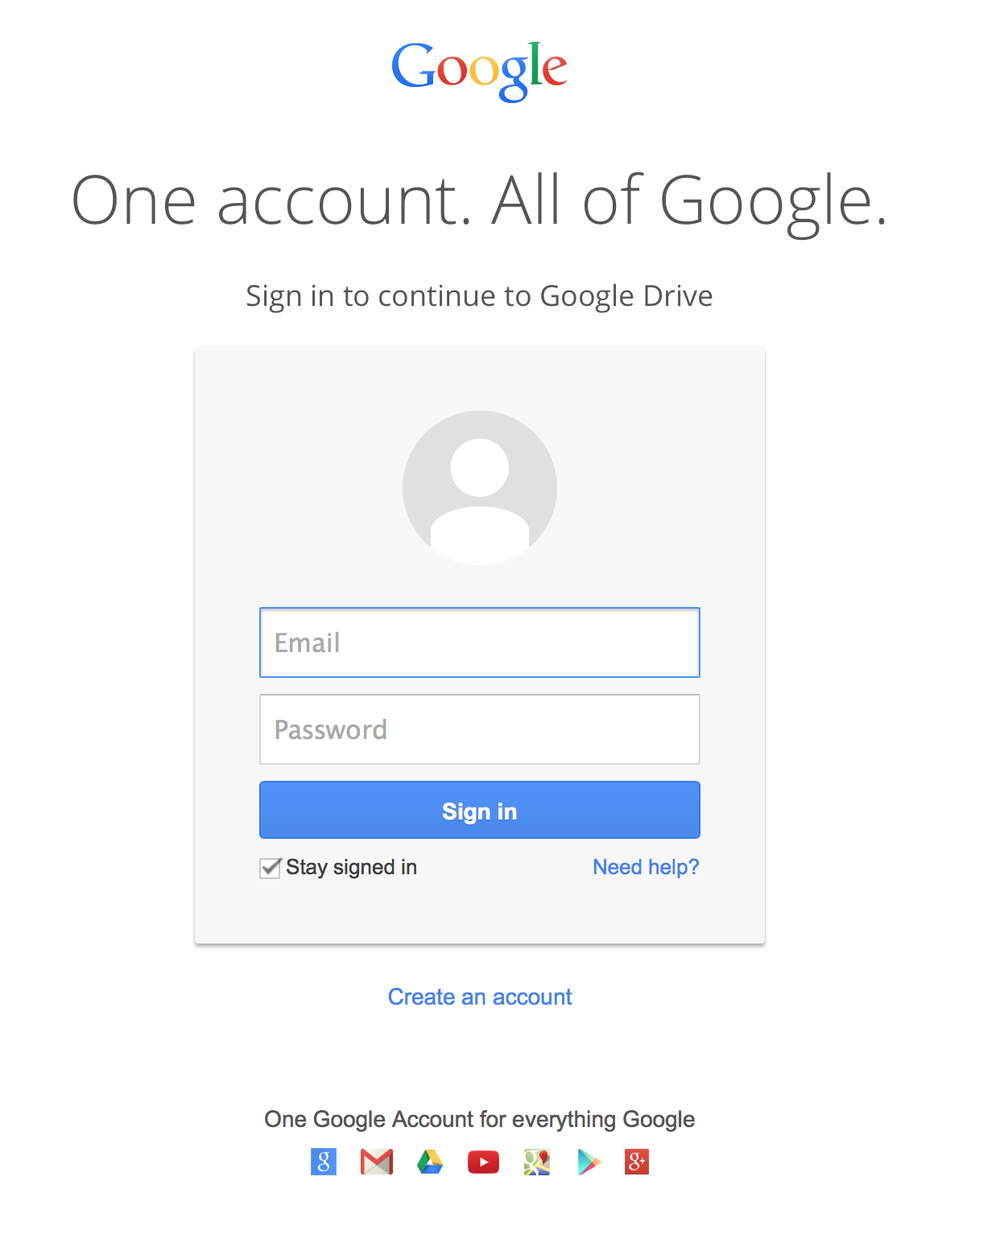 This is the landing page for Google when you are requesting access to the Drive.